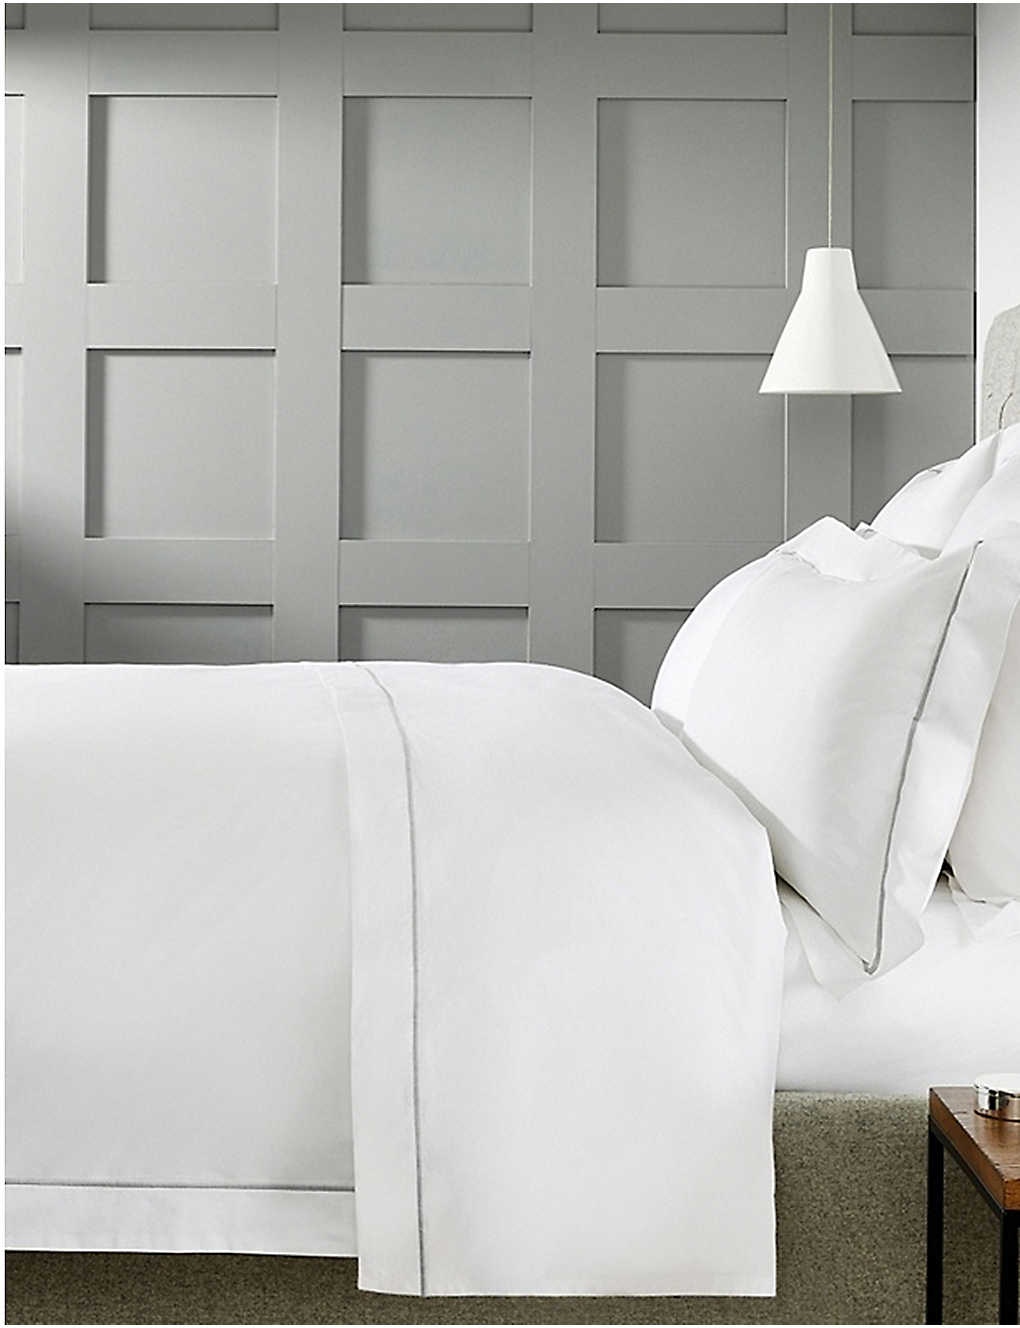 THE WHITE COMPANY: Savoy cotton double duvet cover 200x200cm